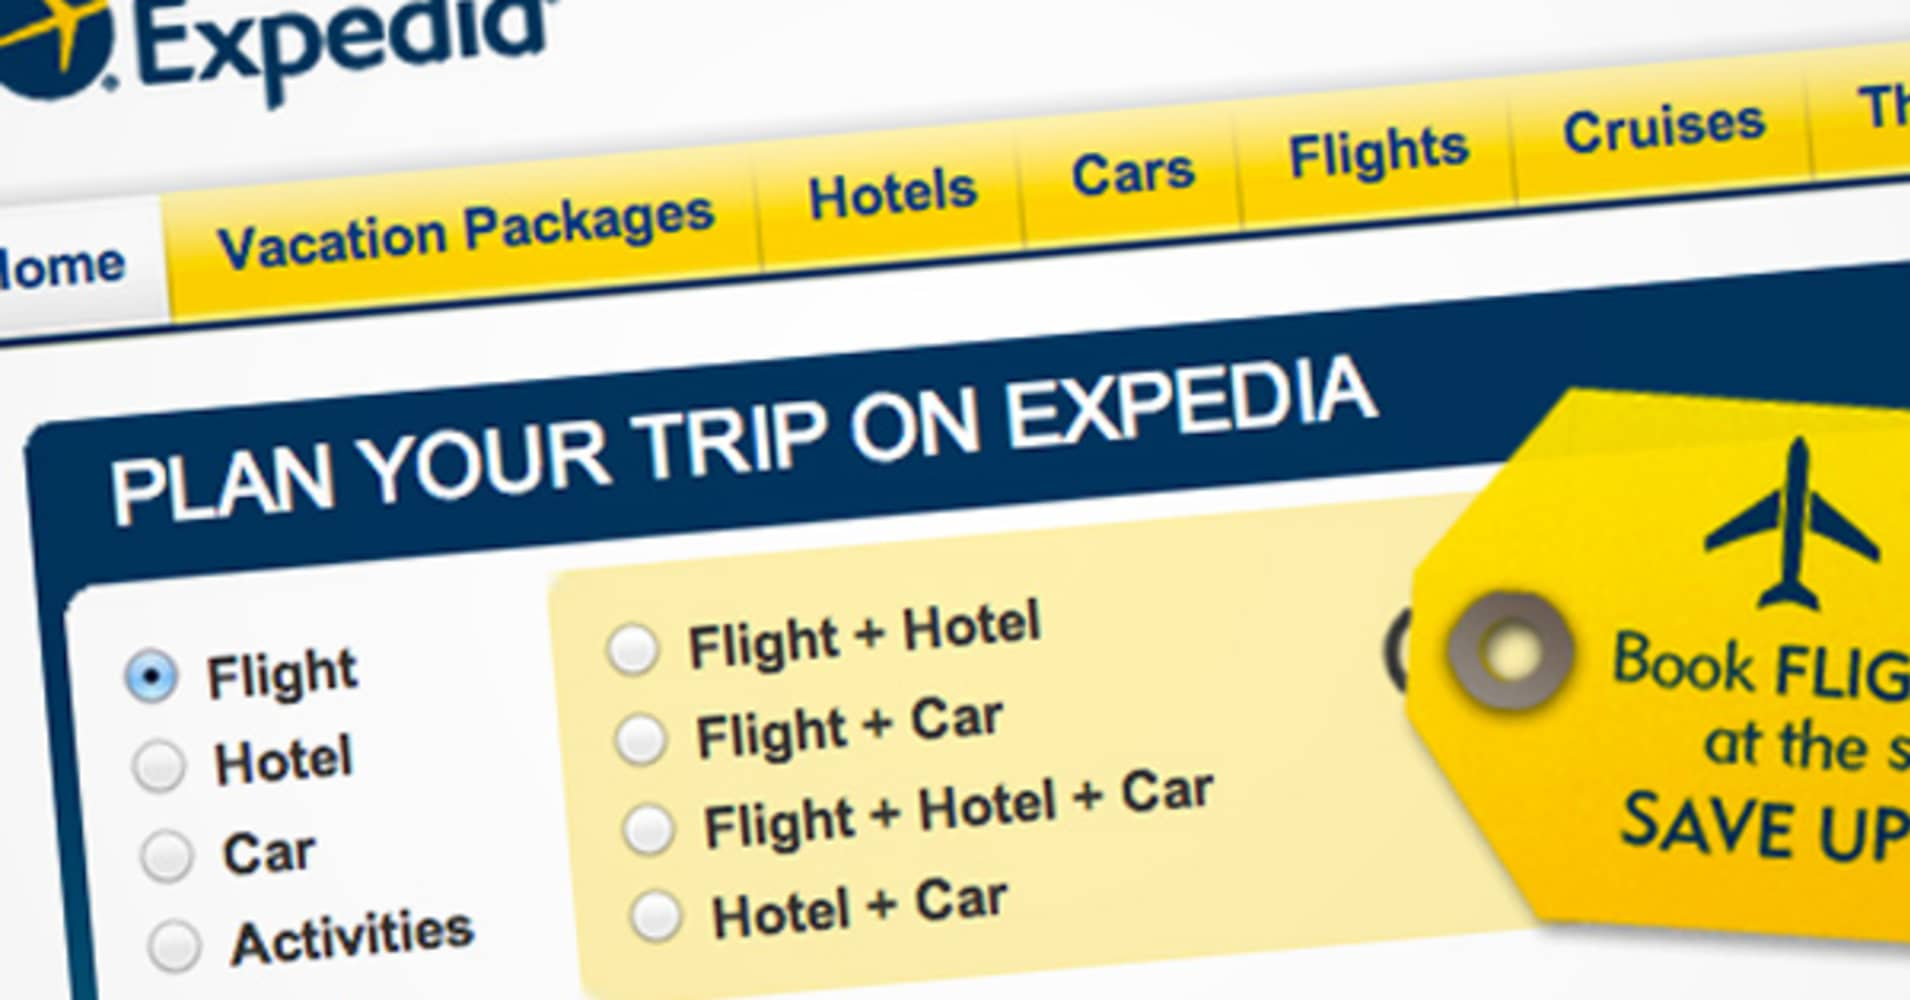 Expedia Travelocity Deal Could Be A Bad Trip For Consumers